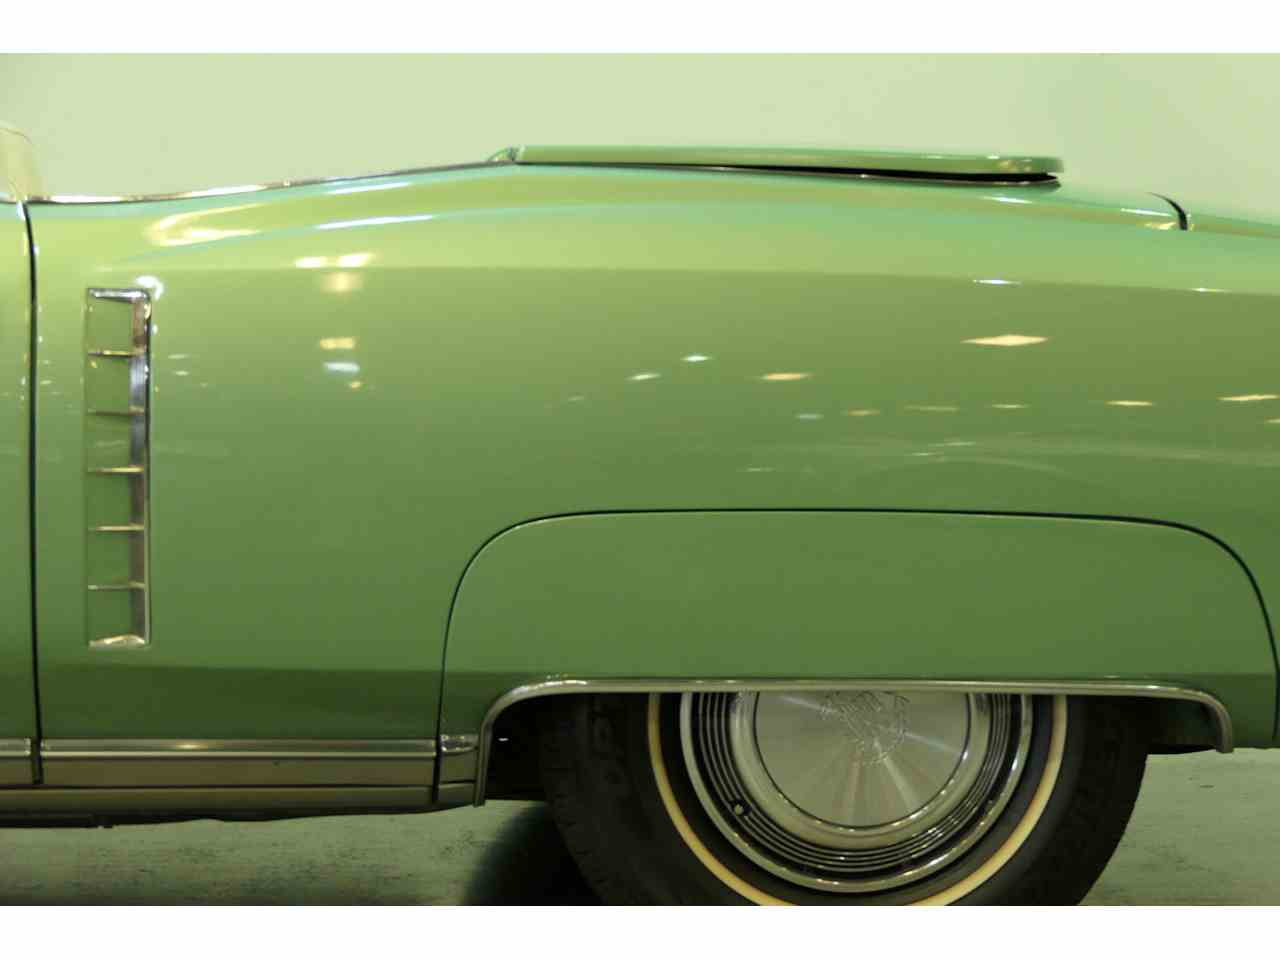 Large Picture of Classic '72 Cadillac Eldorado located in Florida - $25,995.00 Offered by Gateway Classic Cars - Orlando - NEP5